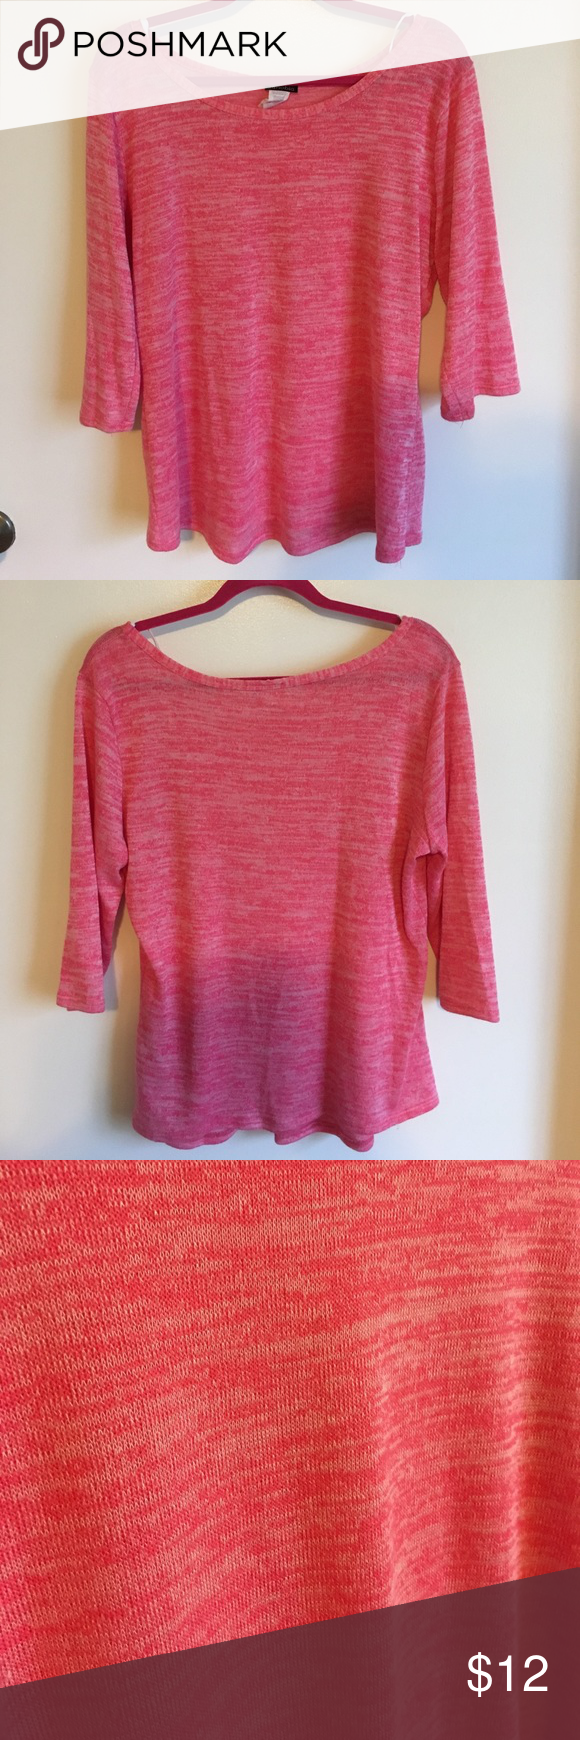 Thin Pink 3/4 Sleeved Sweater | Scoop neck, Boutique and Customer ...